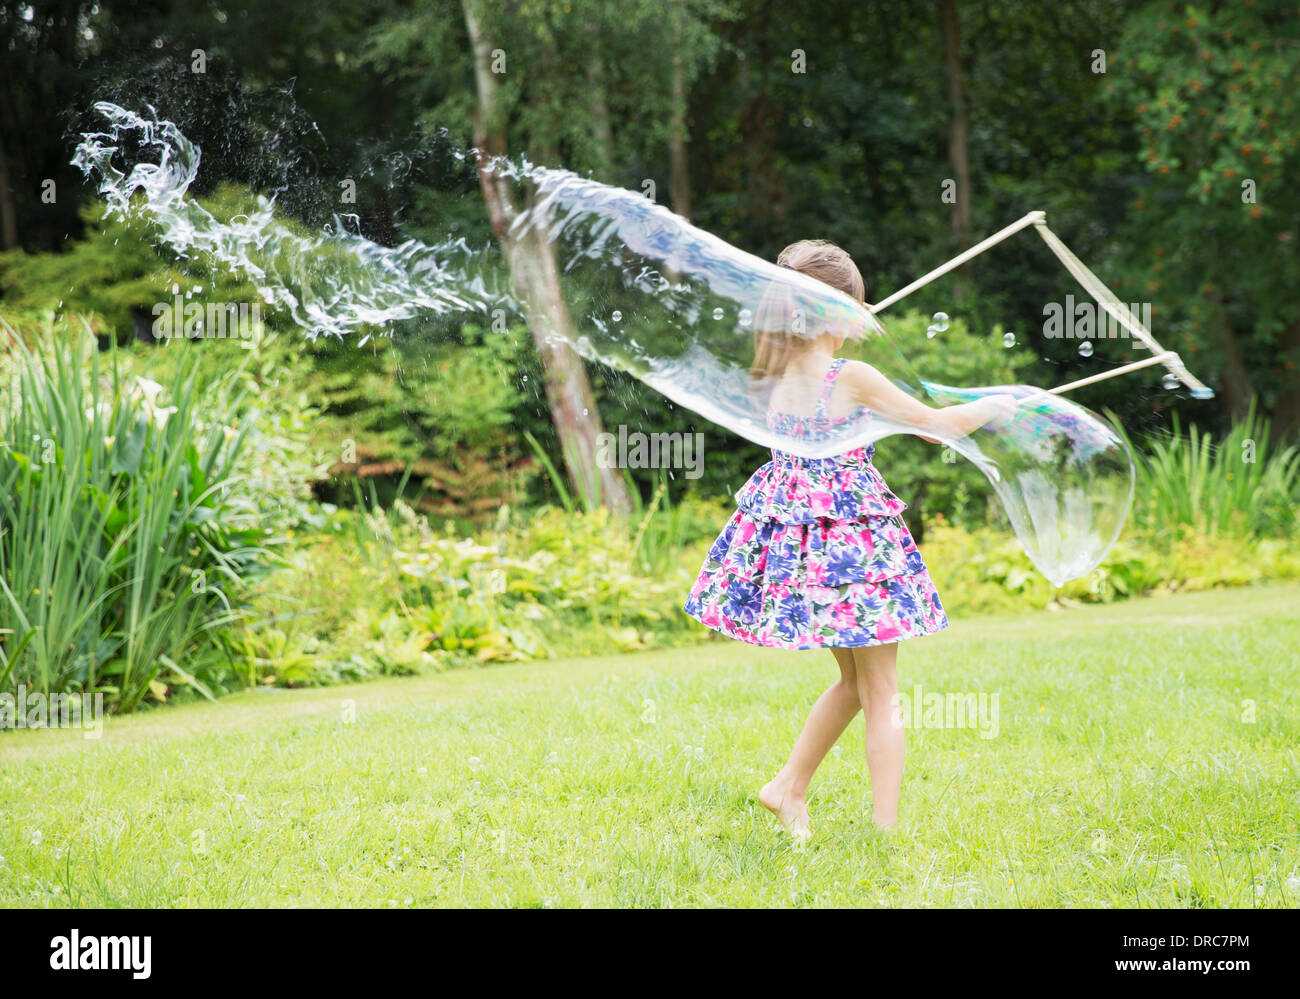 Girl making large bubbles in backyard Stock Photo